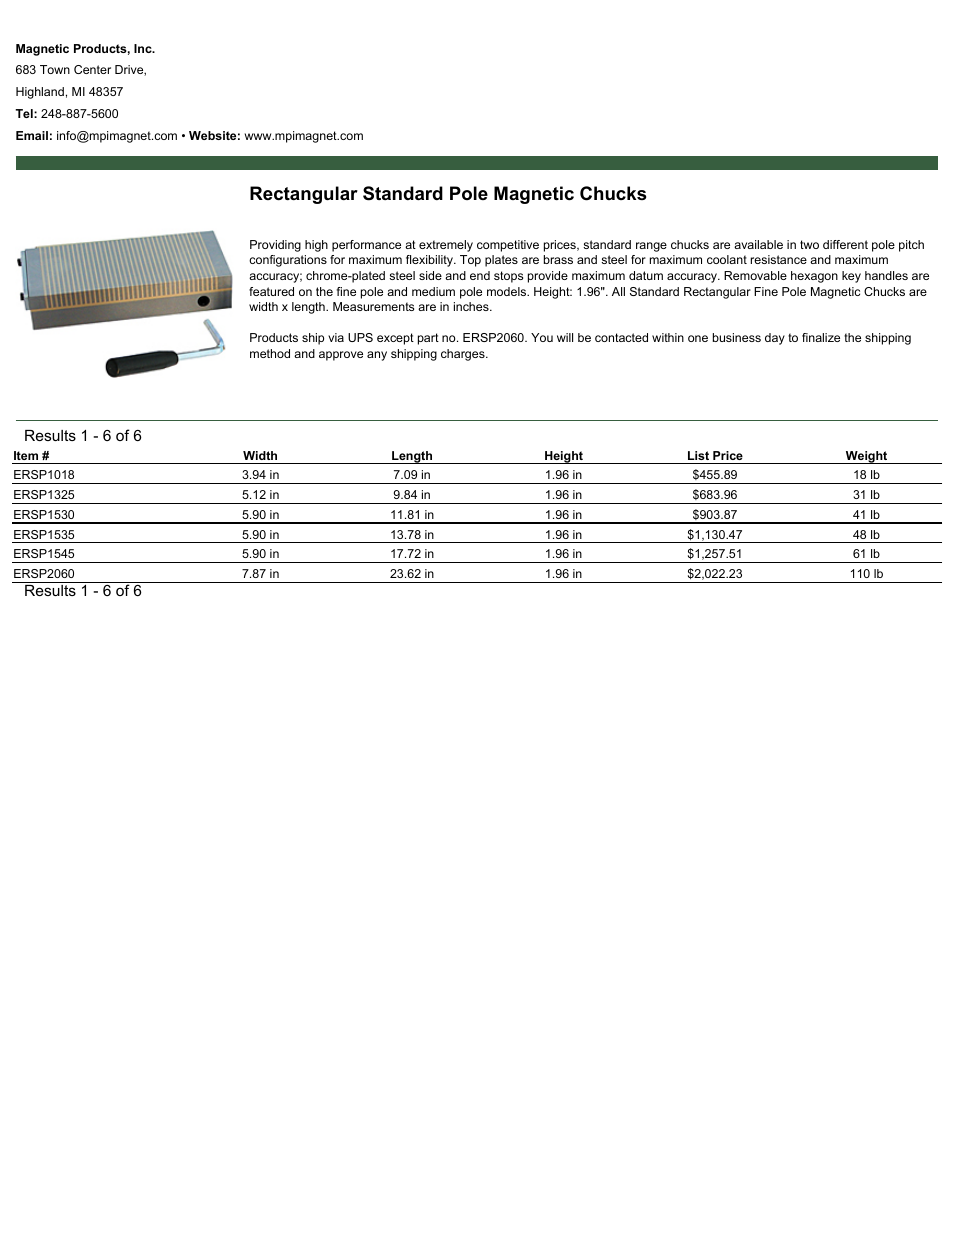 Magnetic Products Rectangular Standard Pole Magnetic Chucks User Manual | 1  page | Also for: Eclipse Standard Rectangular Fine Pole Magnetic Chucks, ...